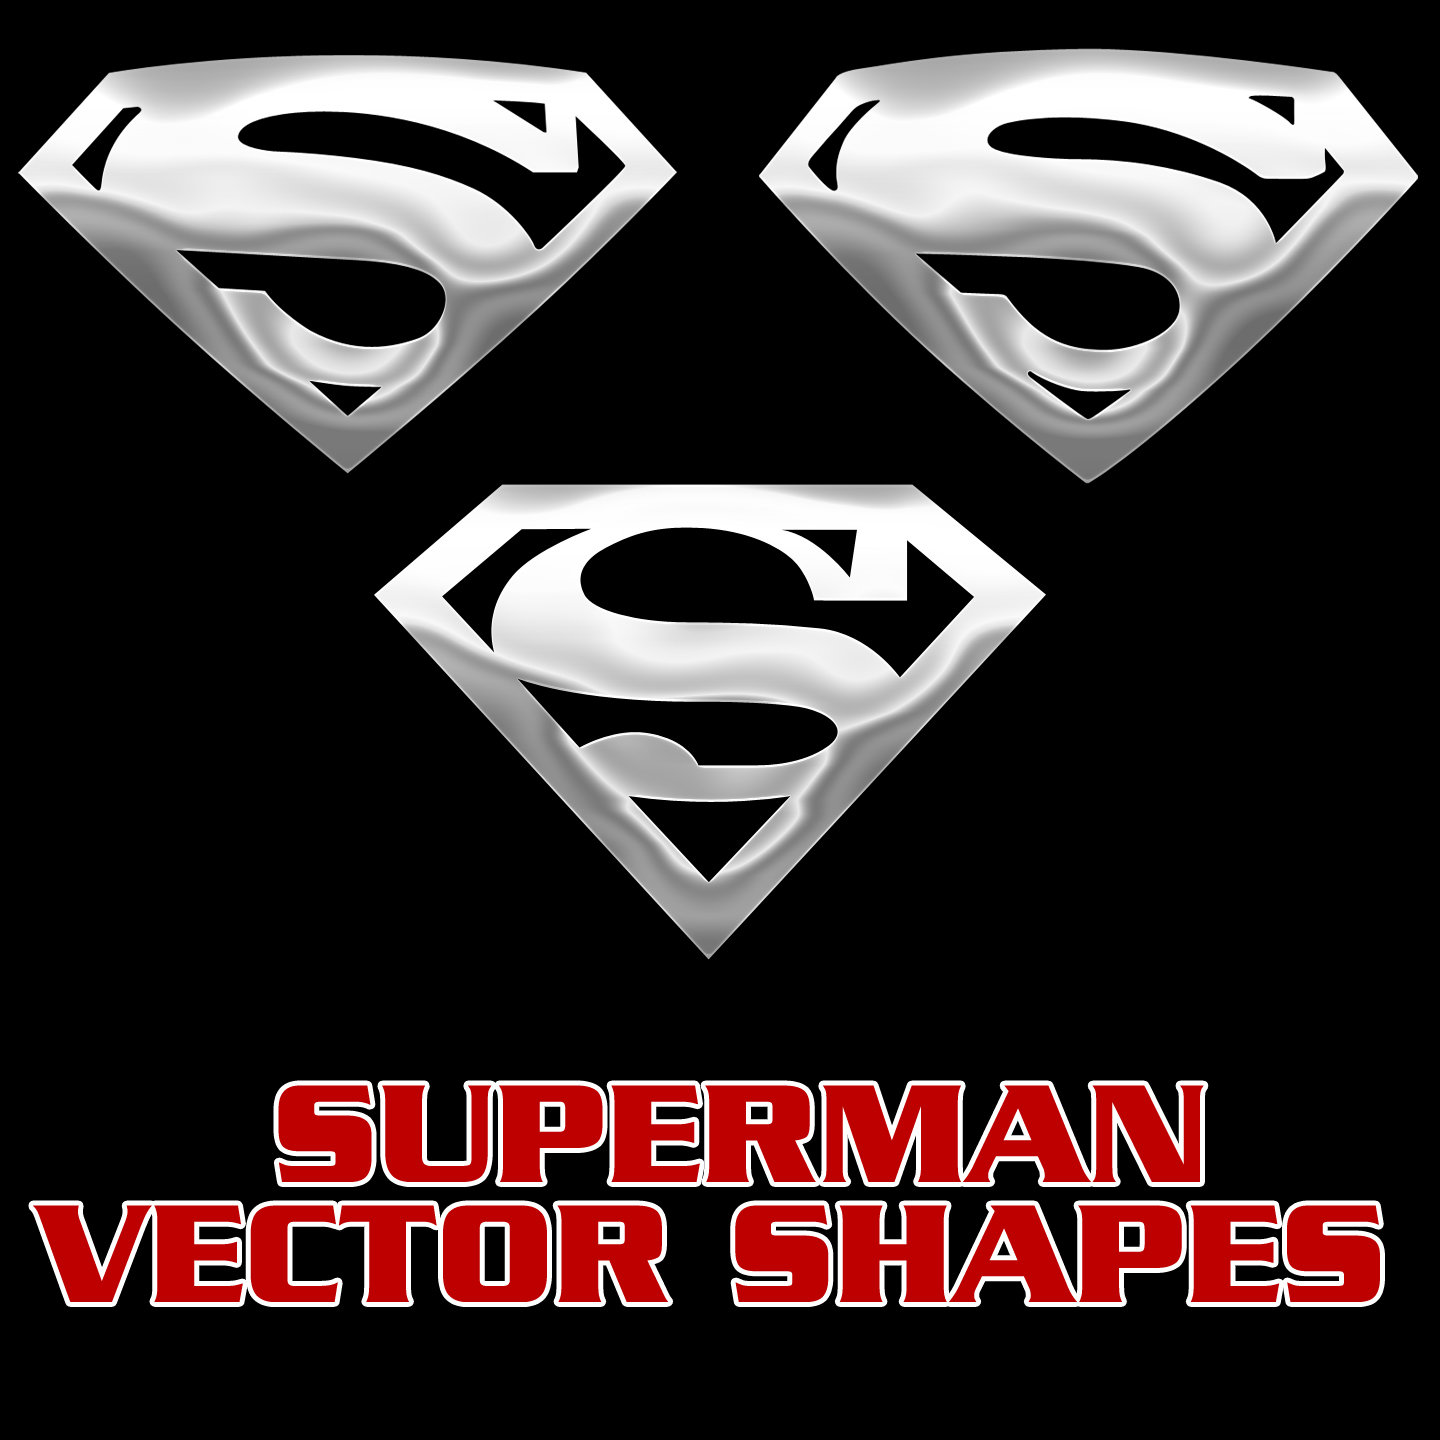 1440x1440 Superman Vector Shapes By Retoucher07030